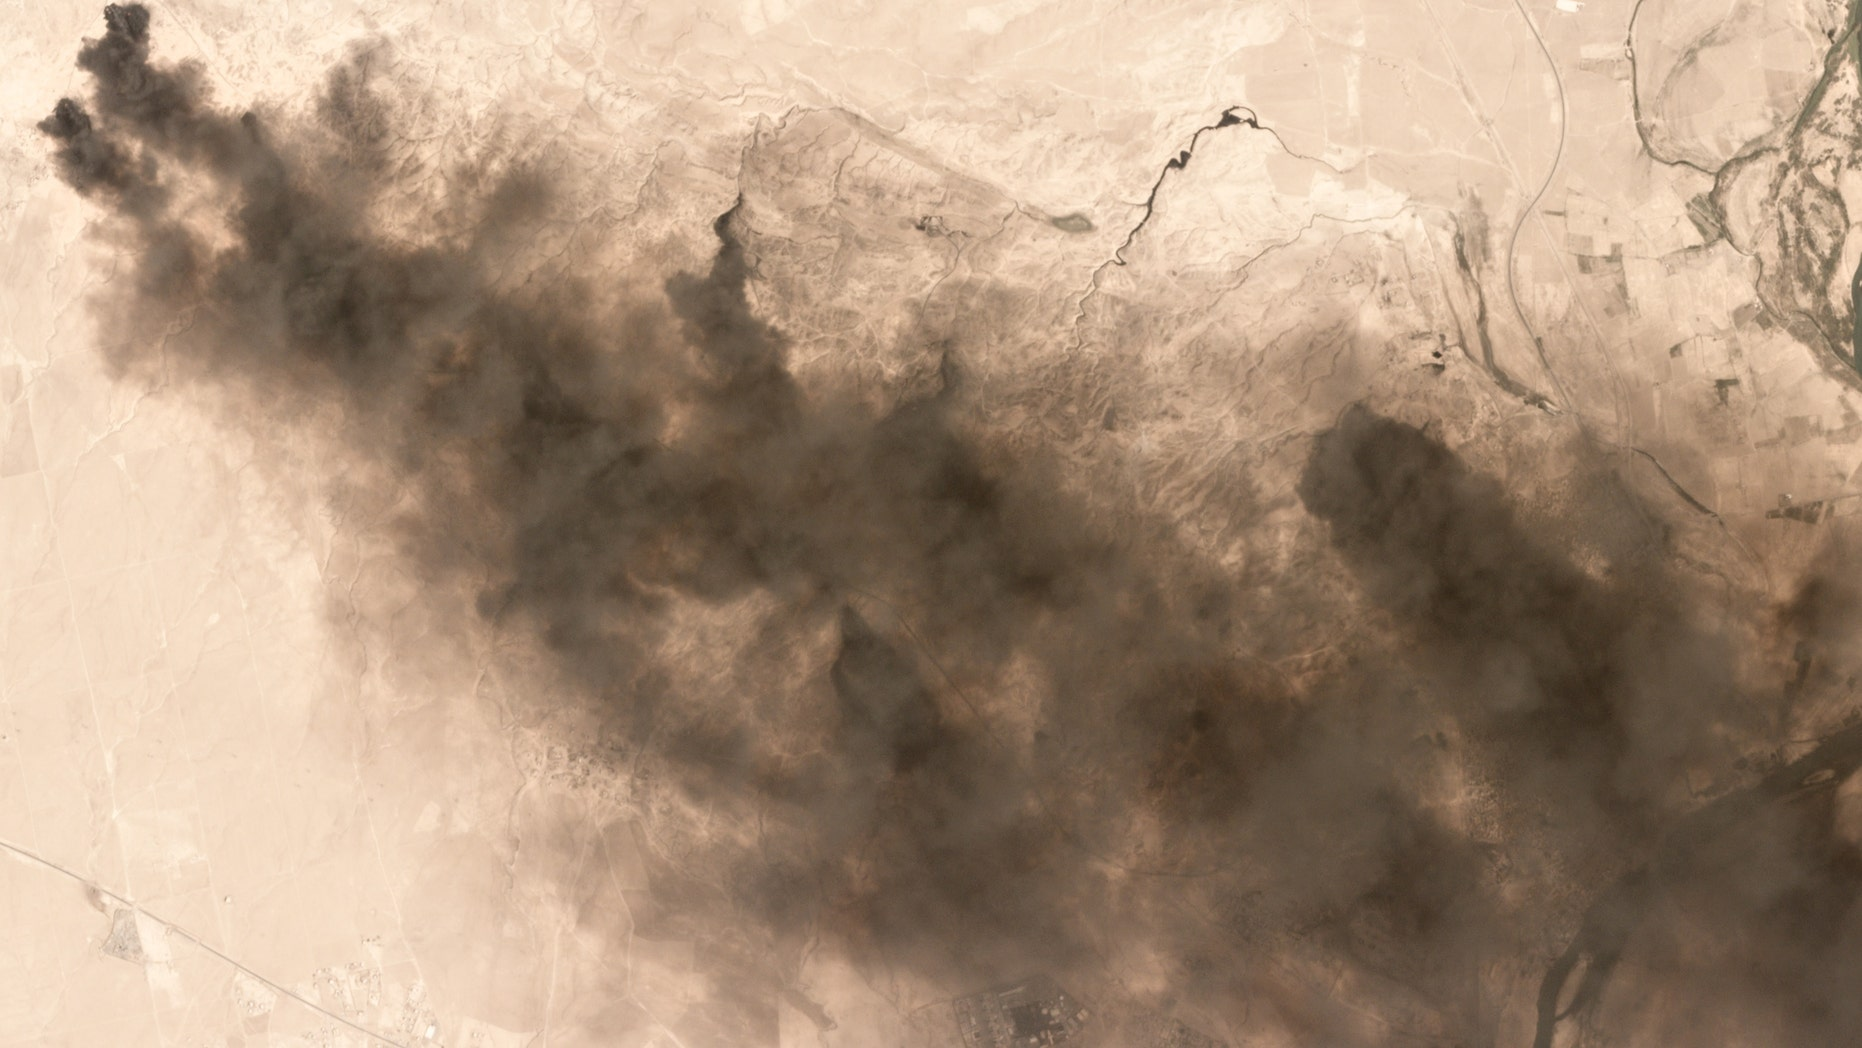 Burning oil fields seen near Qayyarah, Iraq, in this Sept. 4 image.